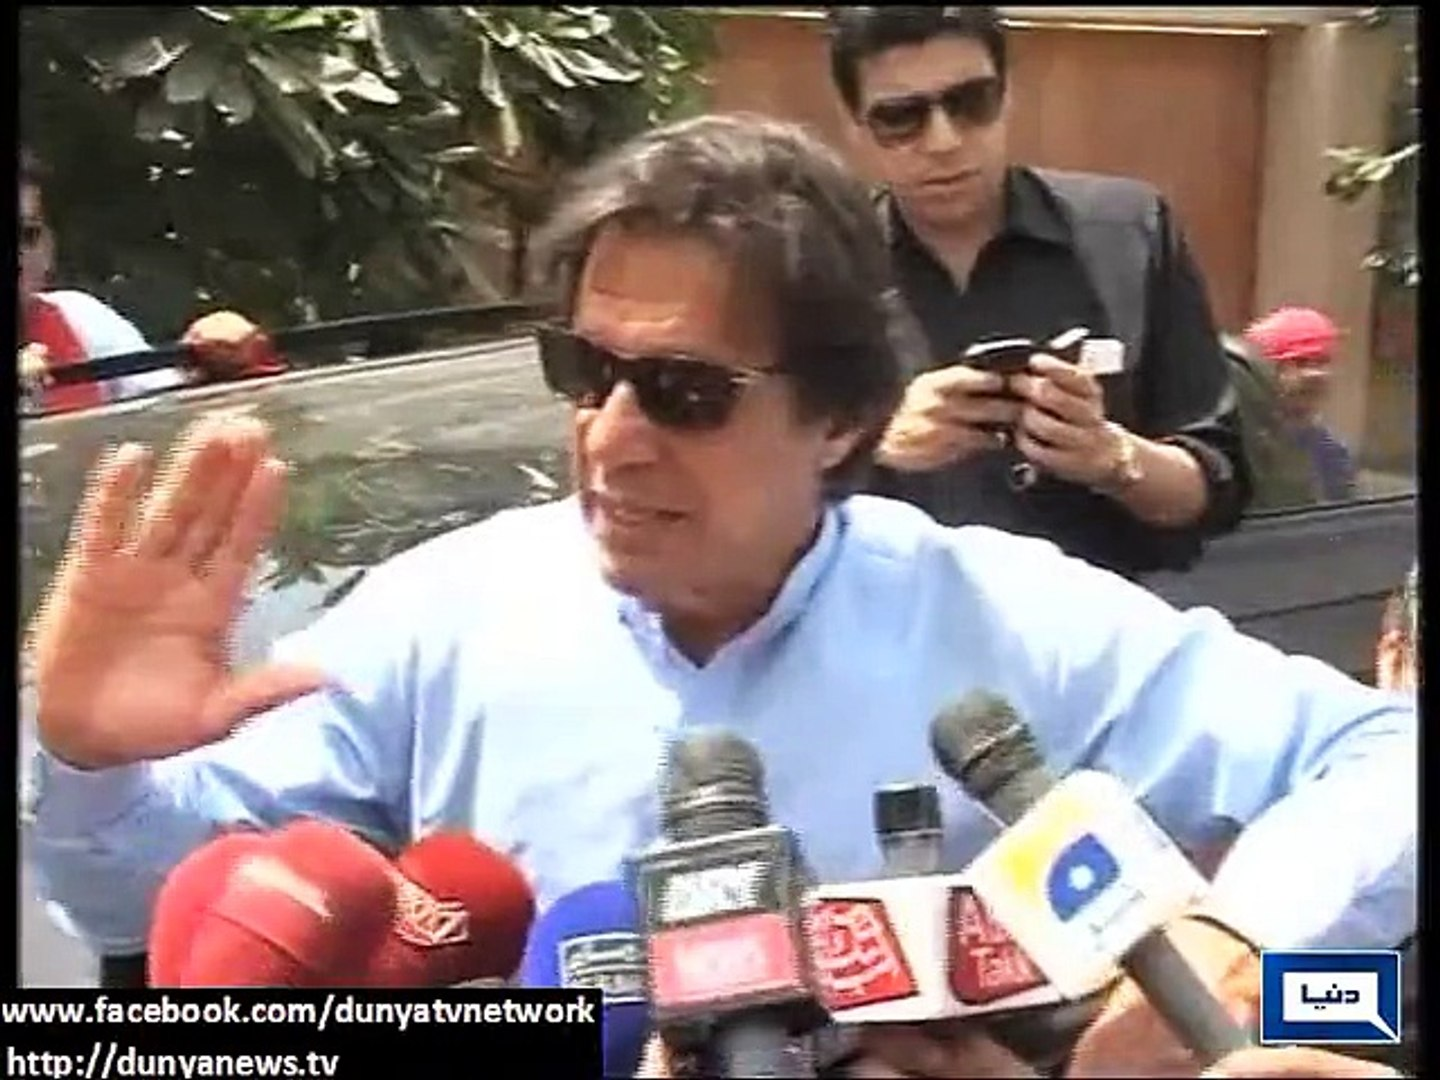 Dunya News-The purpose of my visit to Karachi is to end the the atmosphere of fear: Imran khan